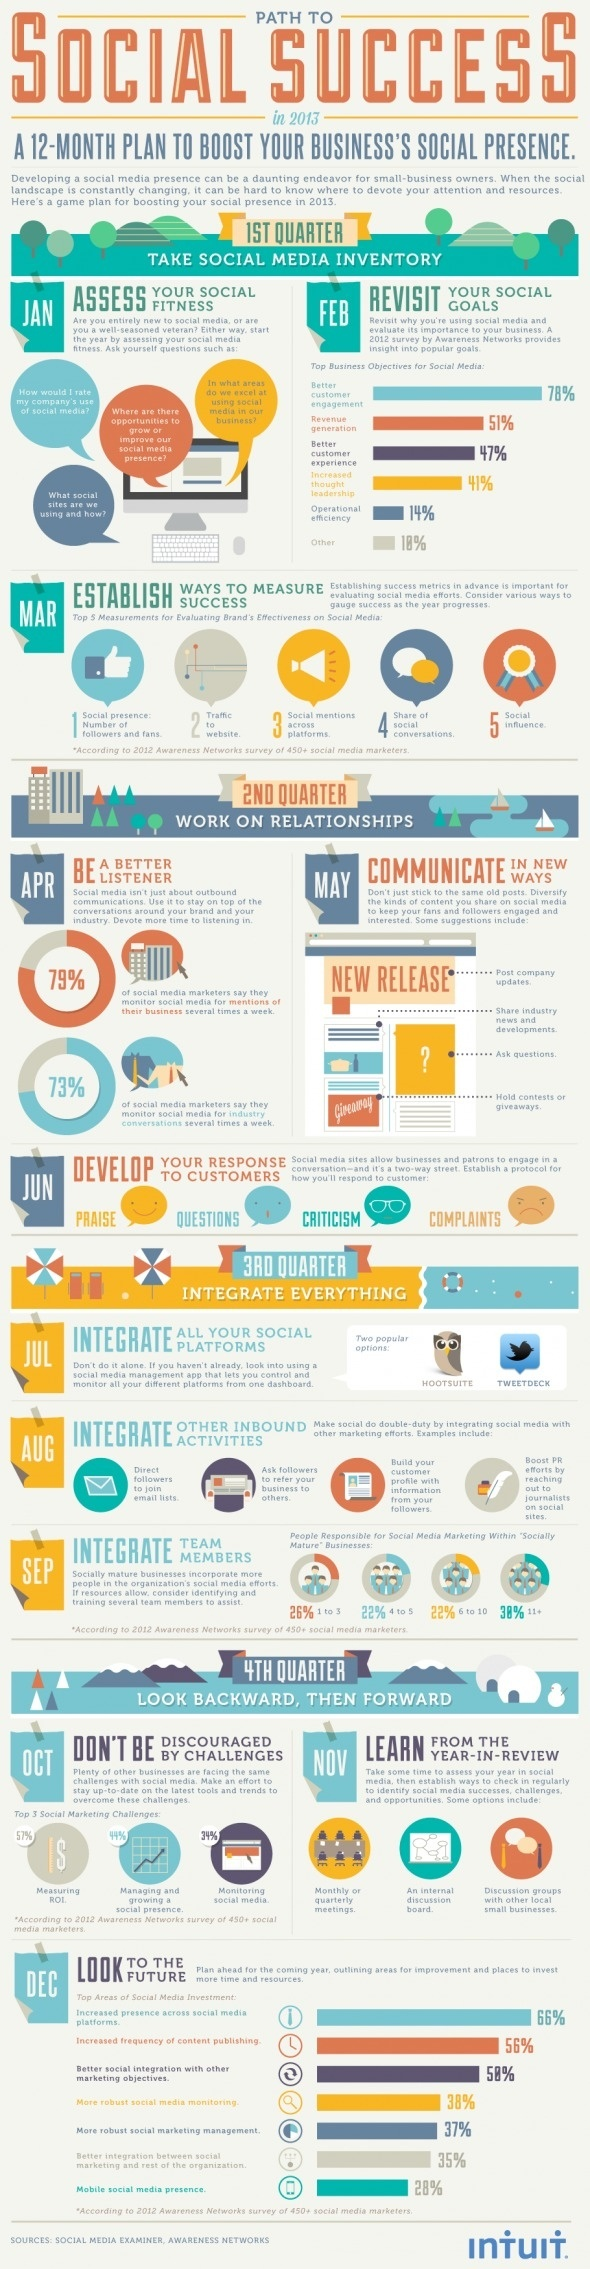 Manage Social Media the Easy Way in 2013 [INFOGRAPHIC] | Intuit Small Business Blog #tech #infographic #media #social